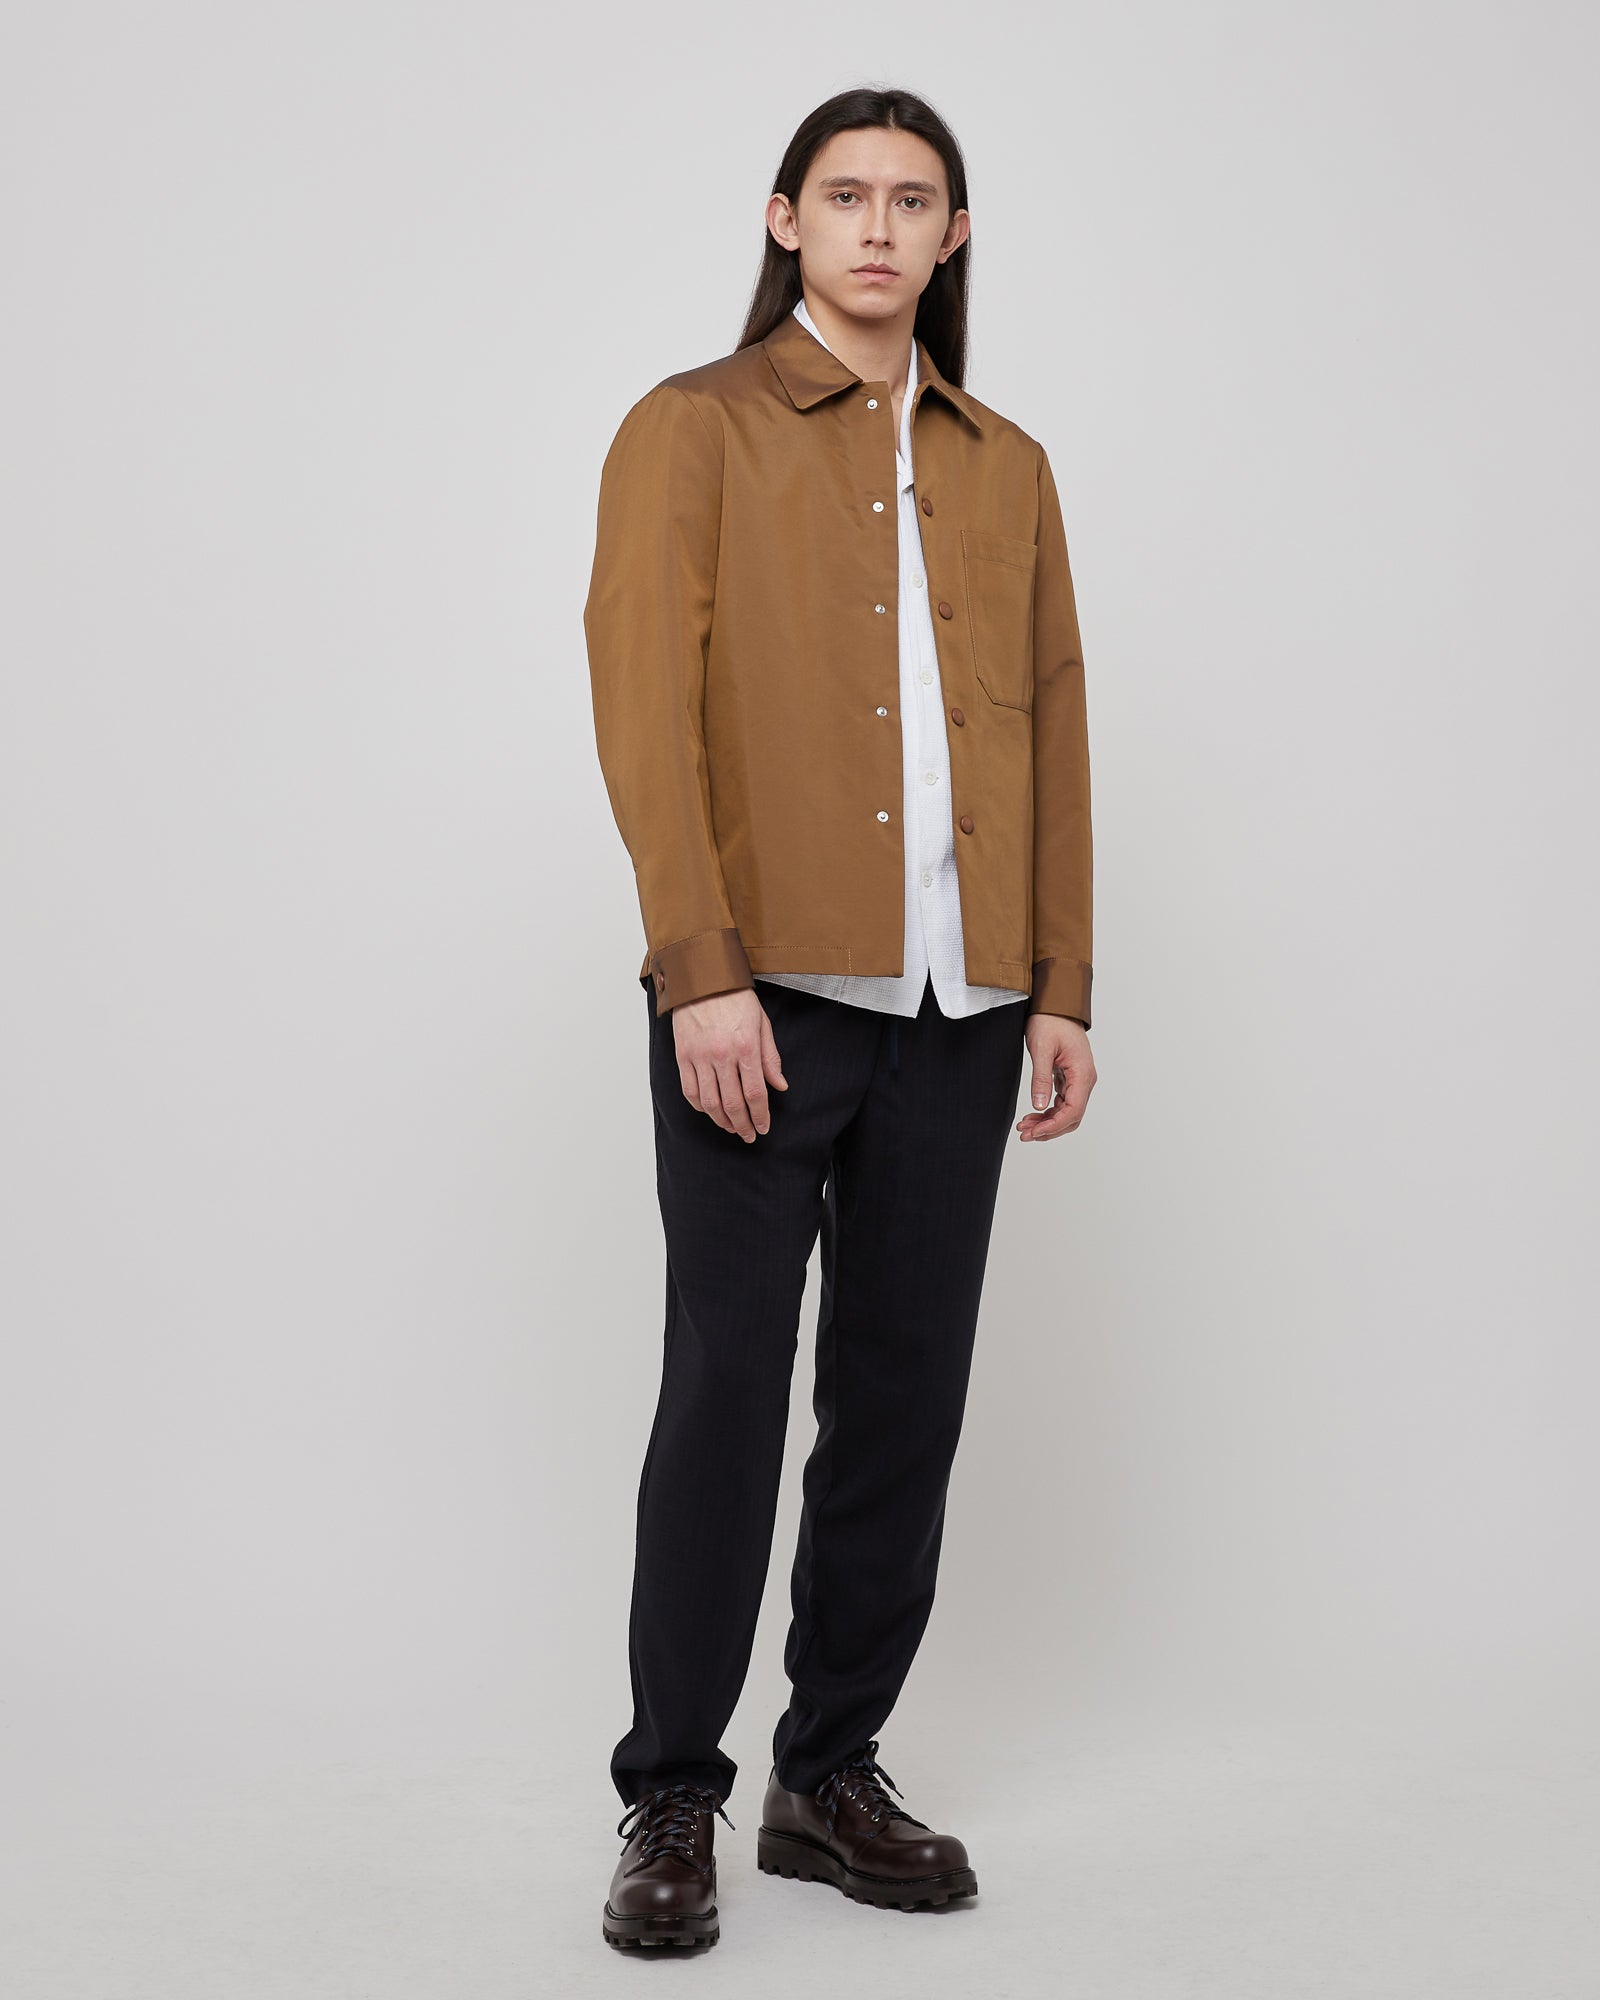 Cedrone Overshirt in Tabacco